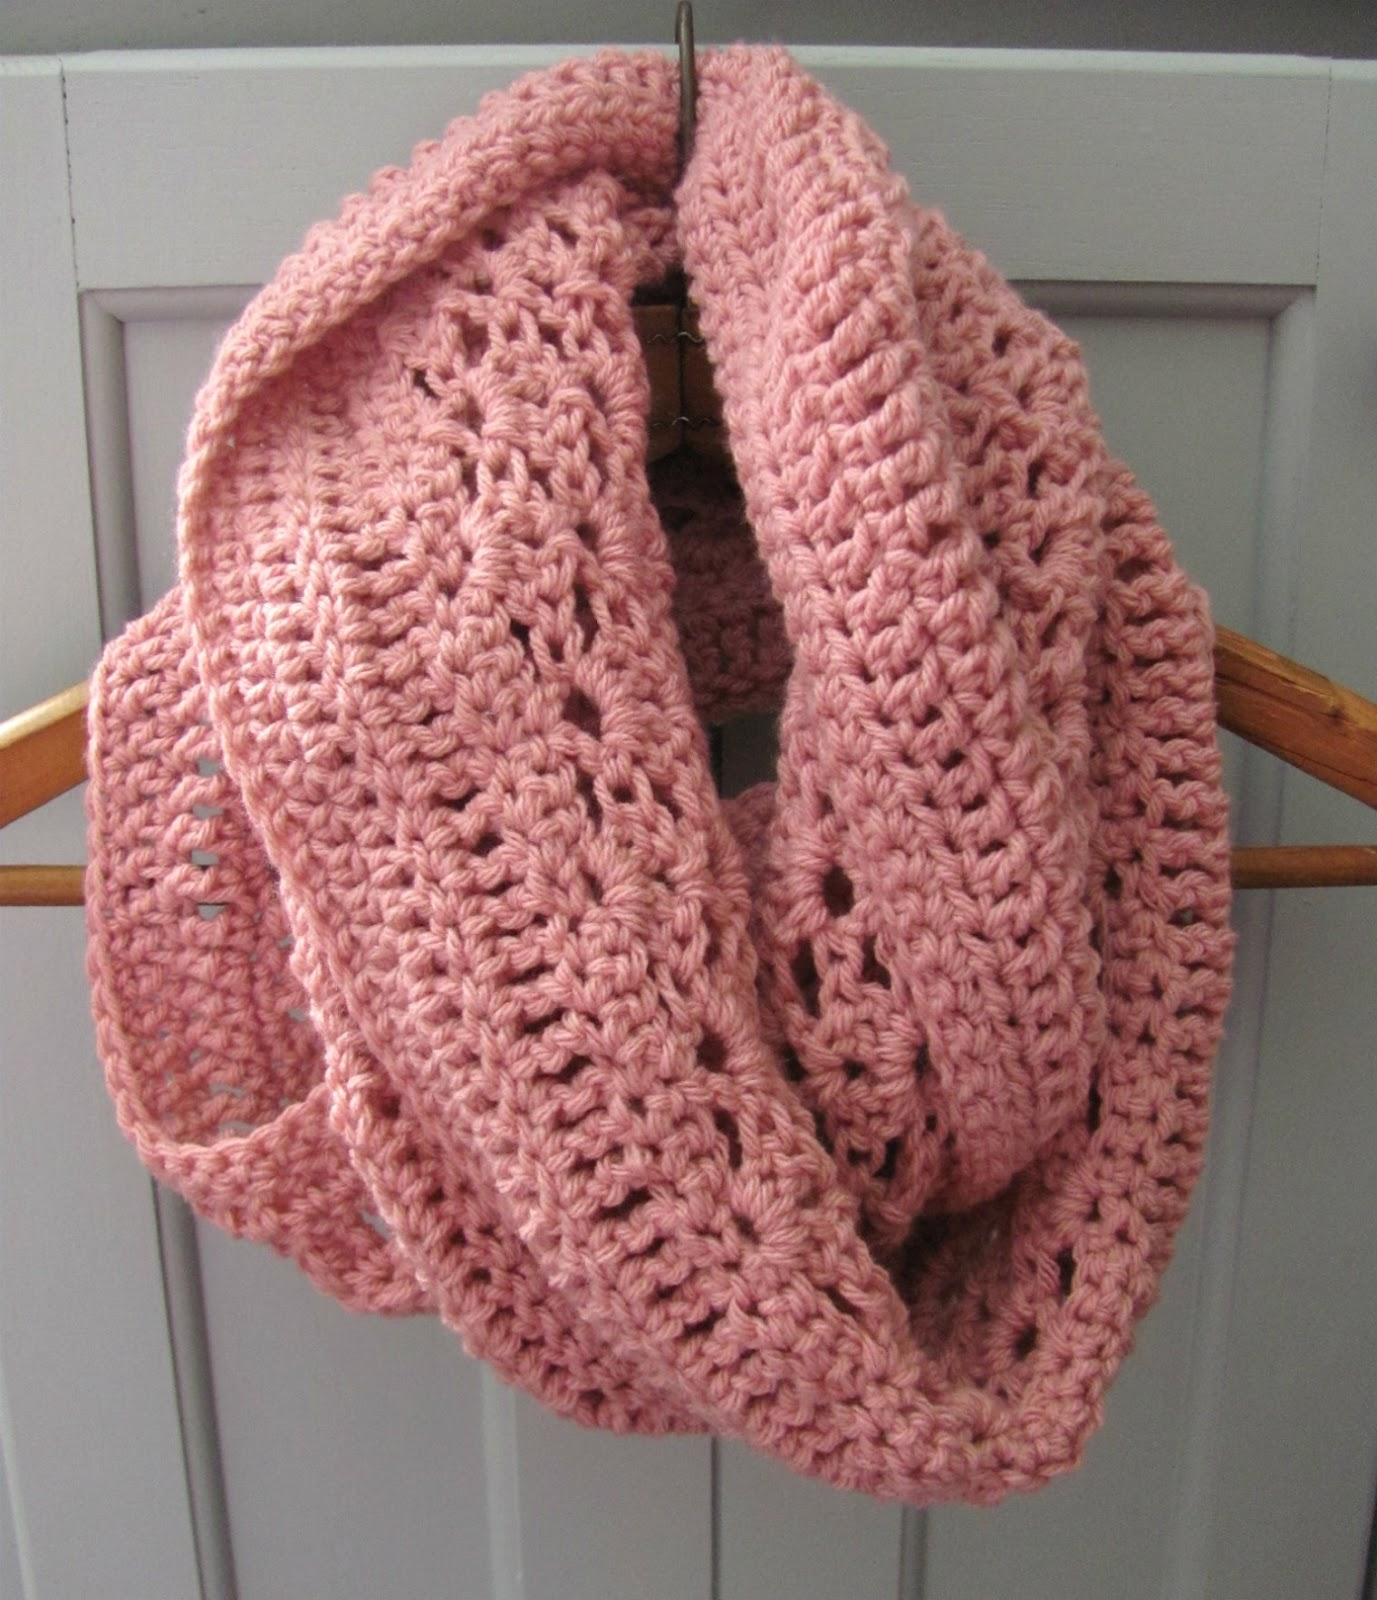 Scarf Crochet Pattern Free to Upgrade Your Winter Style Unless Free Quick And Easy Crochet Scarf Patterns 3 Mincifinefr